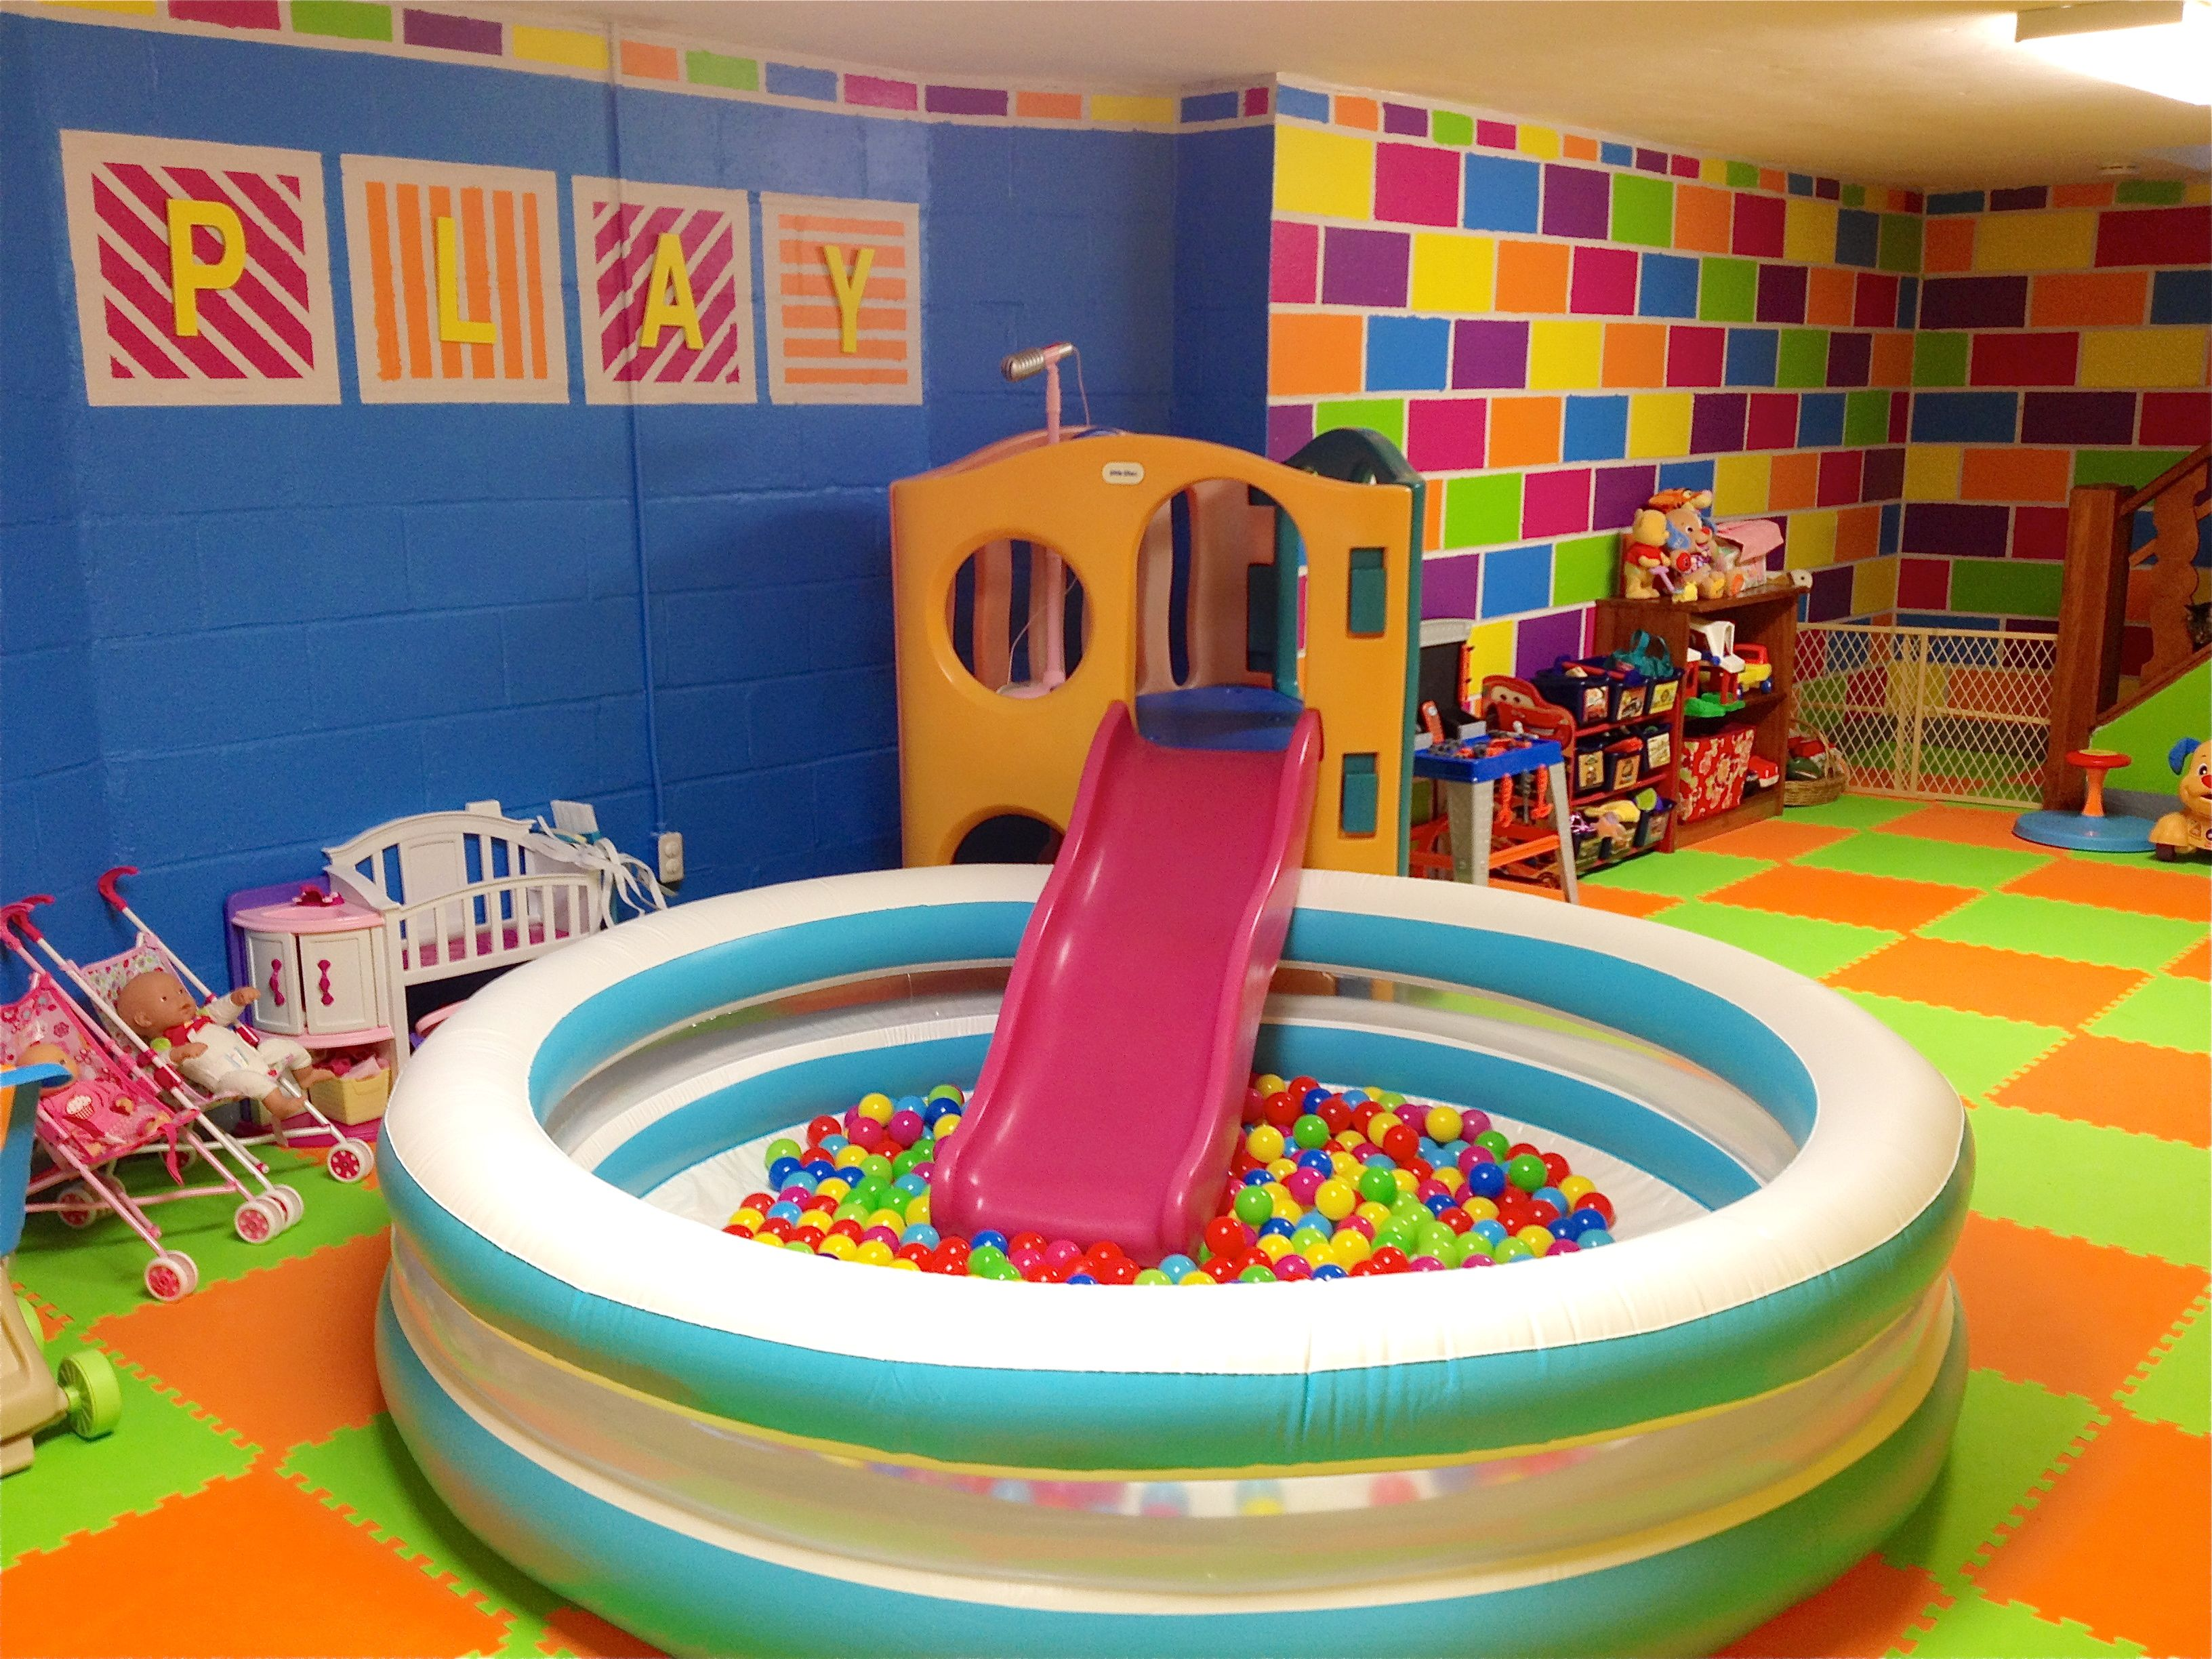 Basement kids game room - 25 Best Ideas About Kids Basement On Pinterest Basement Kids Playrooms Finished Basement Playroom And Children Playroom